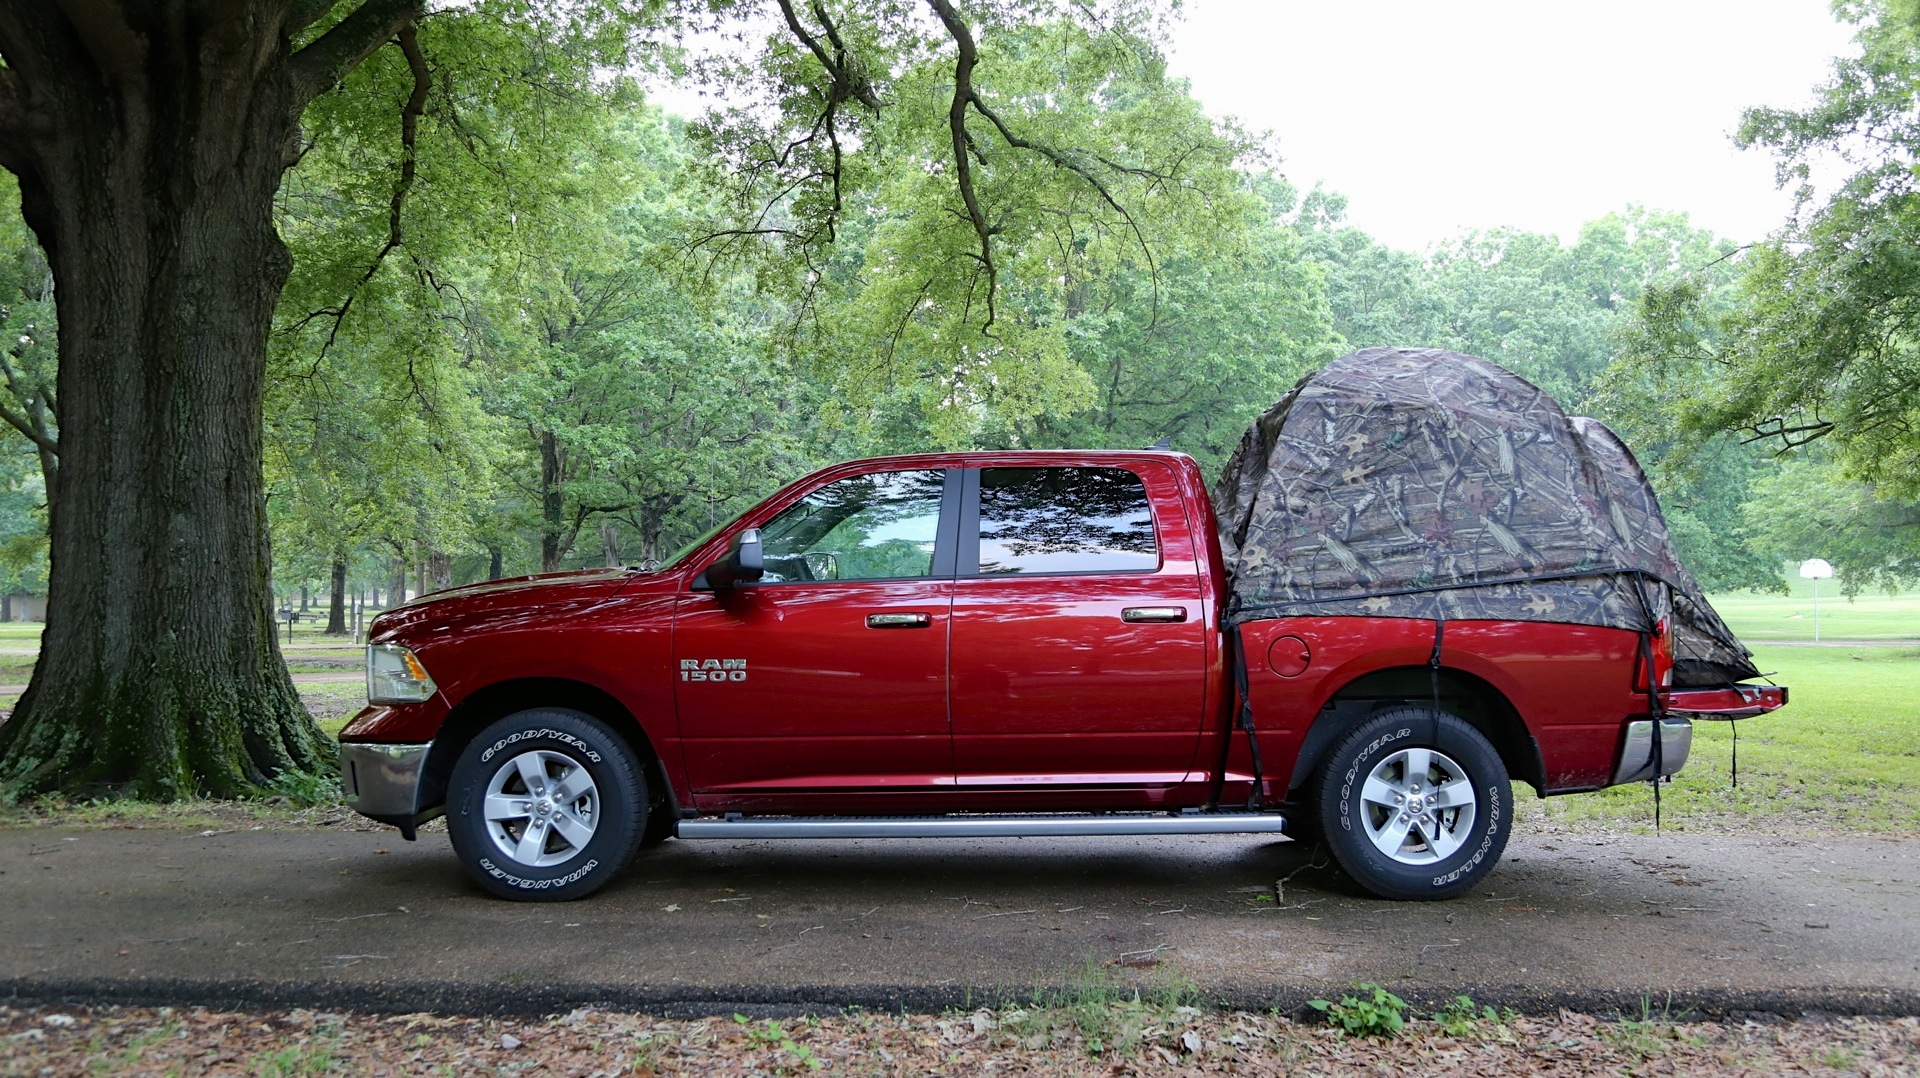 30 Days Of 2013 Ram 1500 Camping In Your Truck Page 2